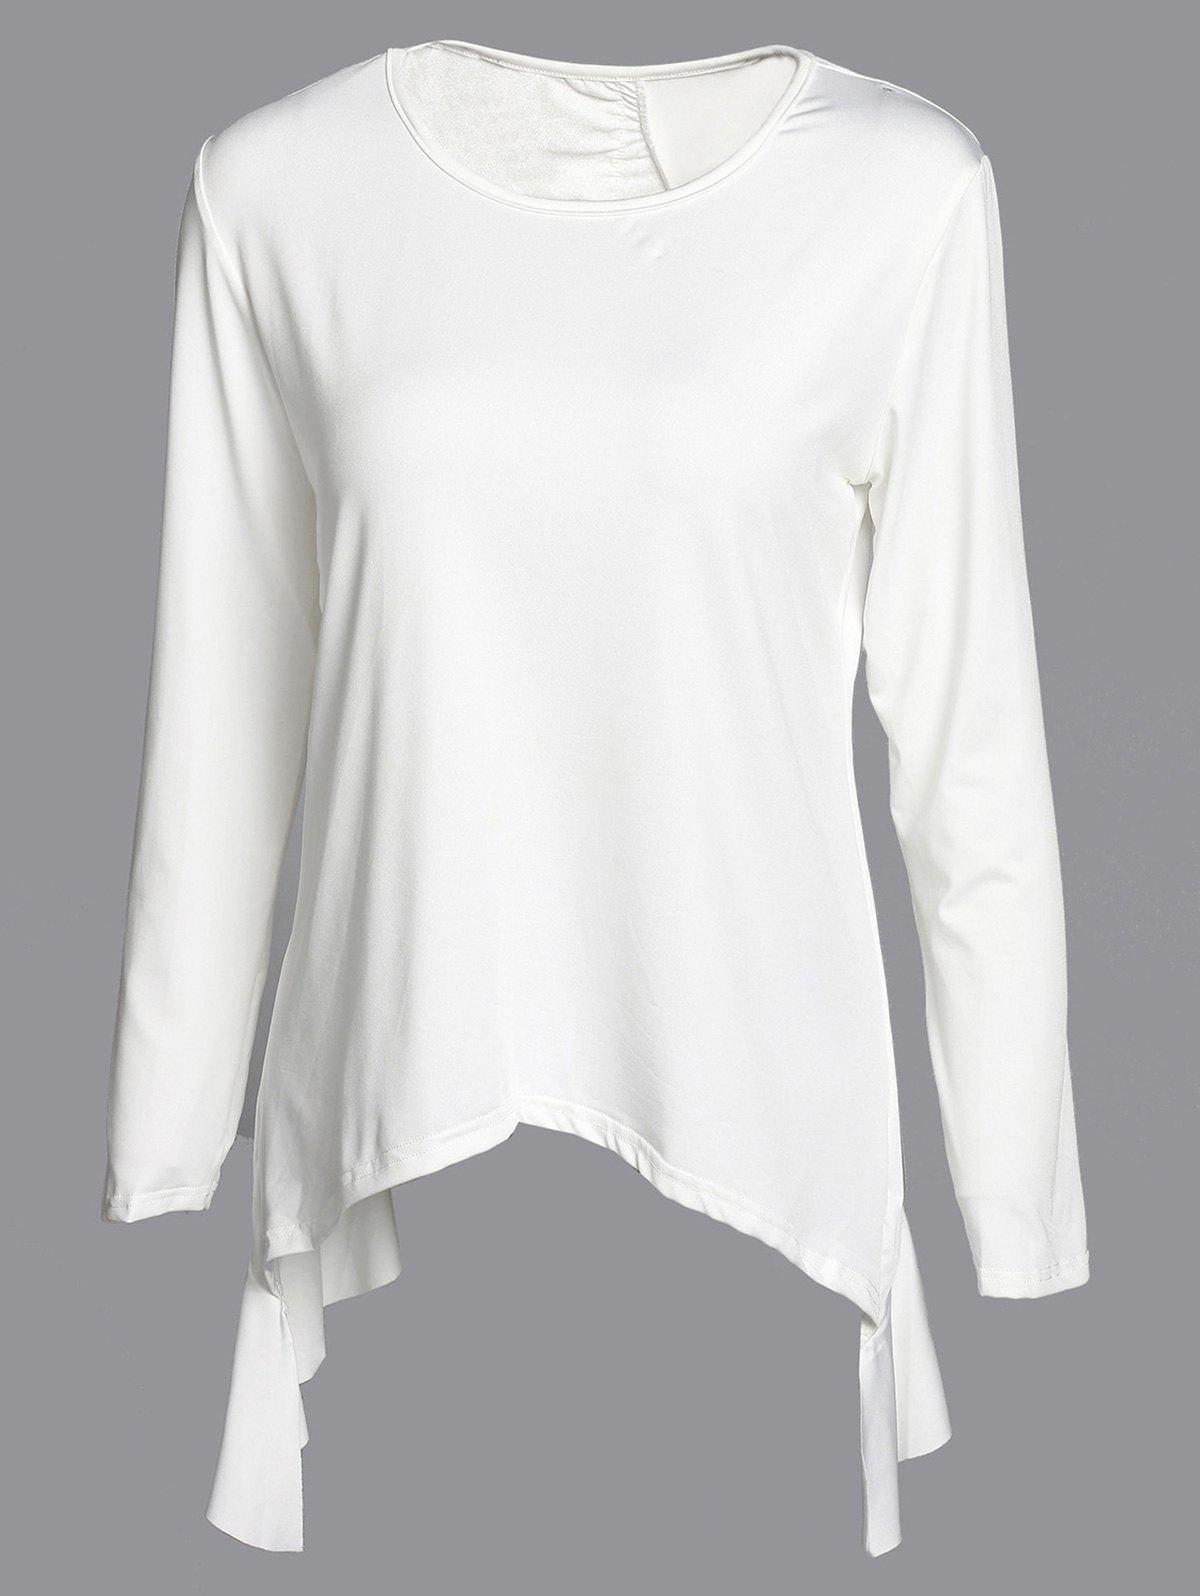 Women's Fashionable Solid Color 3/4 Sleeve Asymmetrical Cut Out Blouse